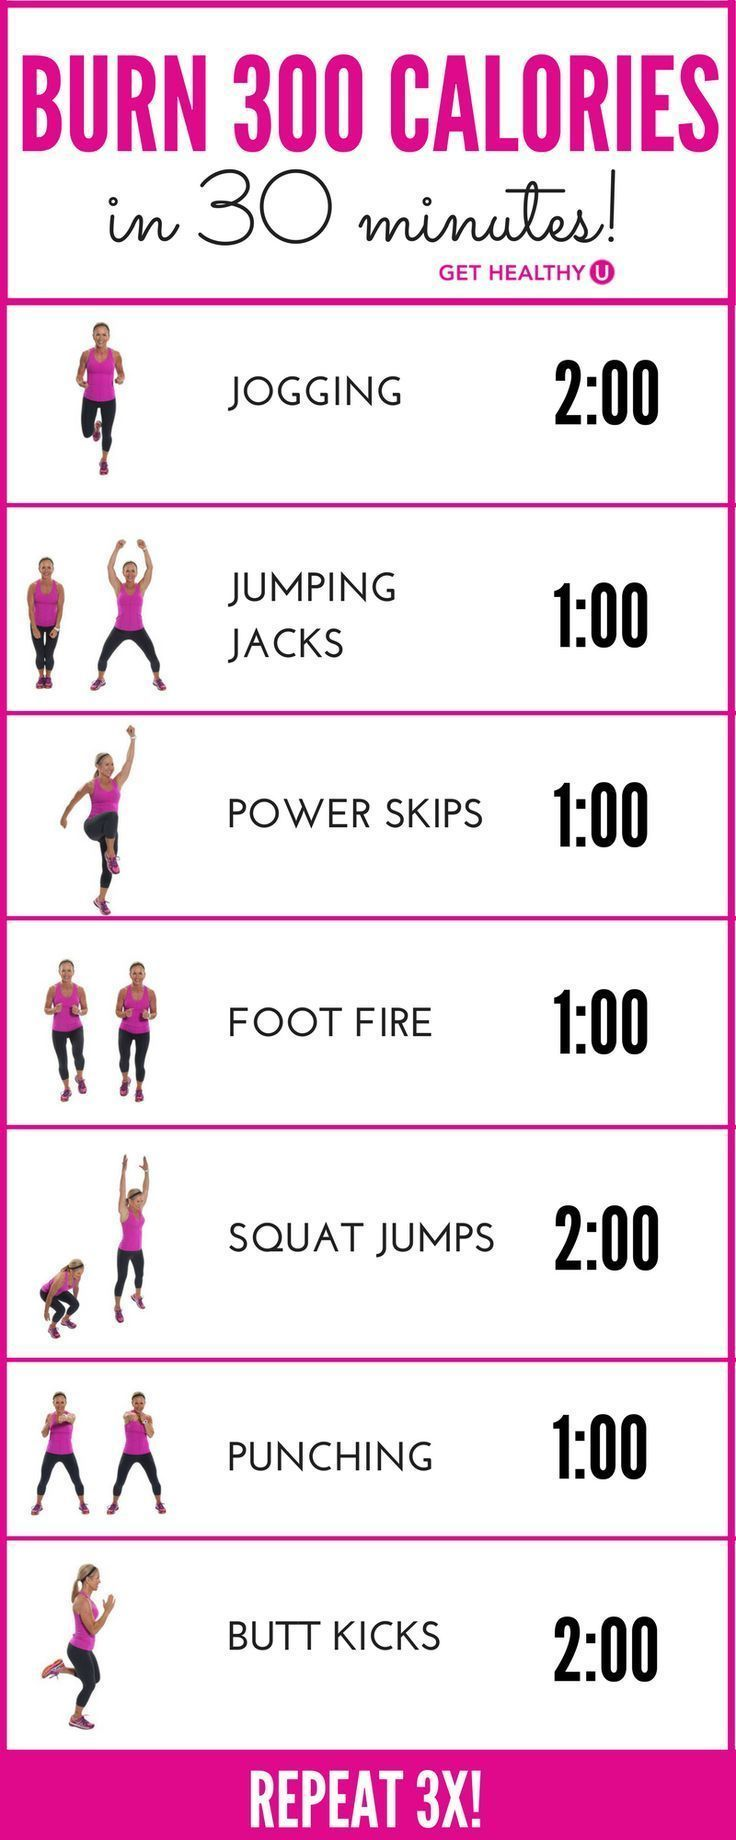 Most experts agree that the average 150-pound woman, exercising with intensity, will burn about 100 calories in 10 minutes. This 30-minute workout, if done with INTENSITY will burn around 300 calories! Get your heart pumping and feel the burn!